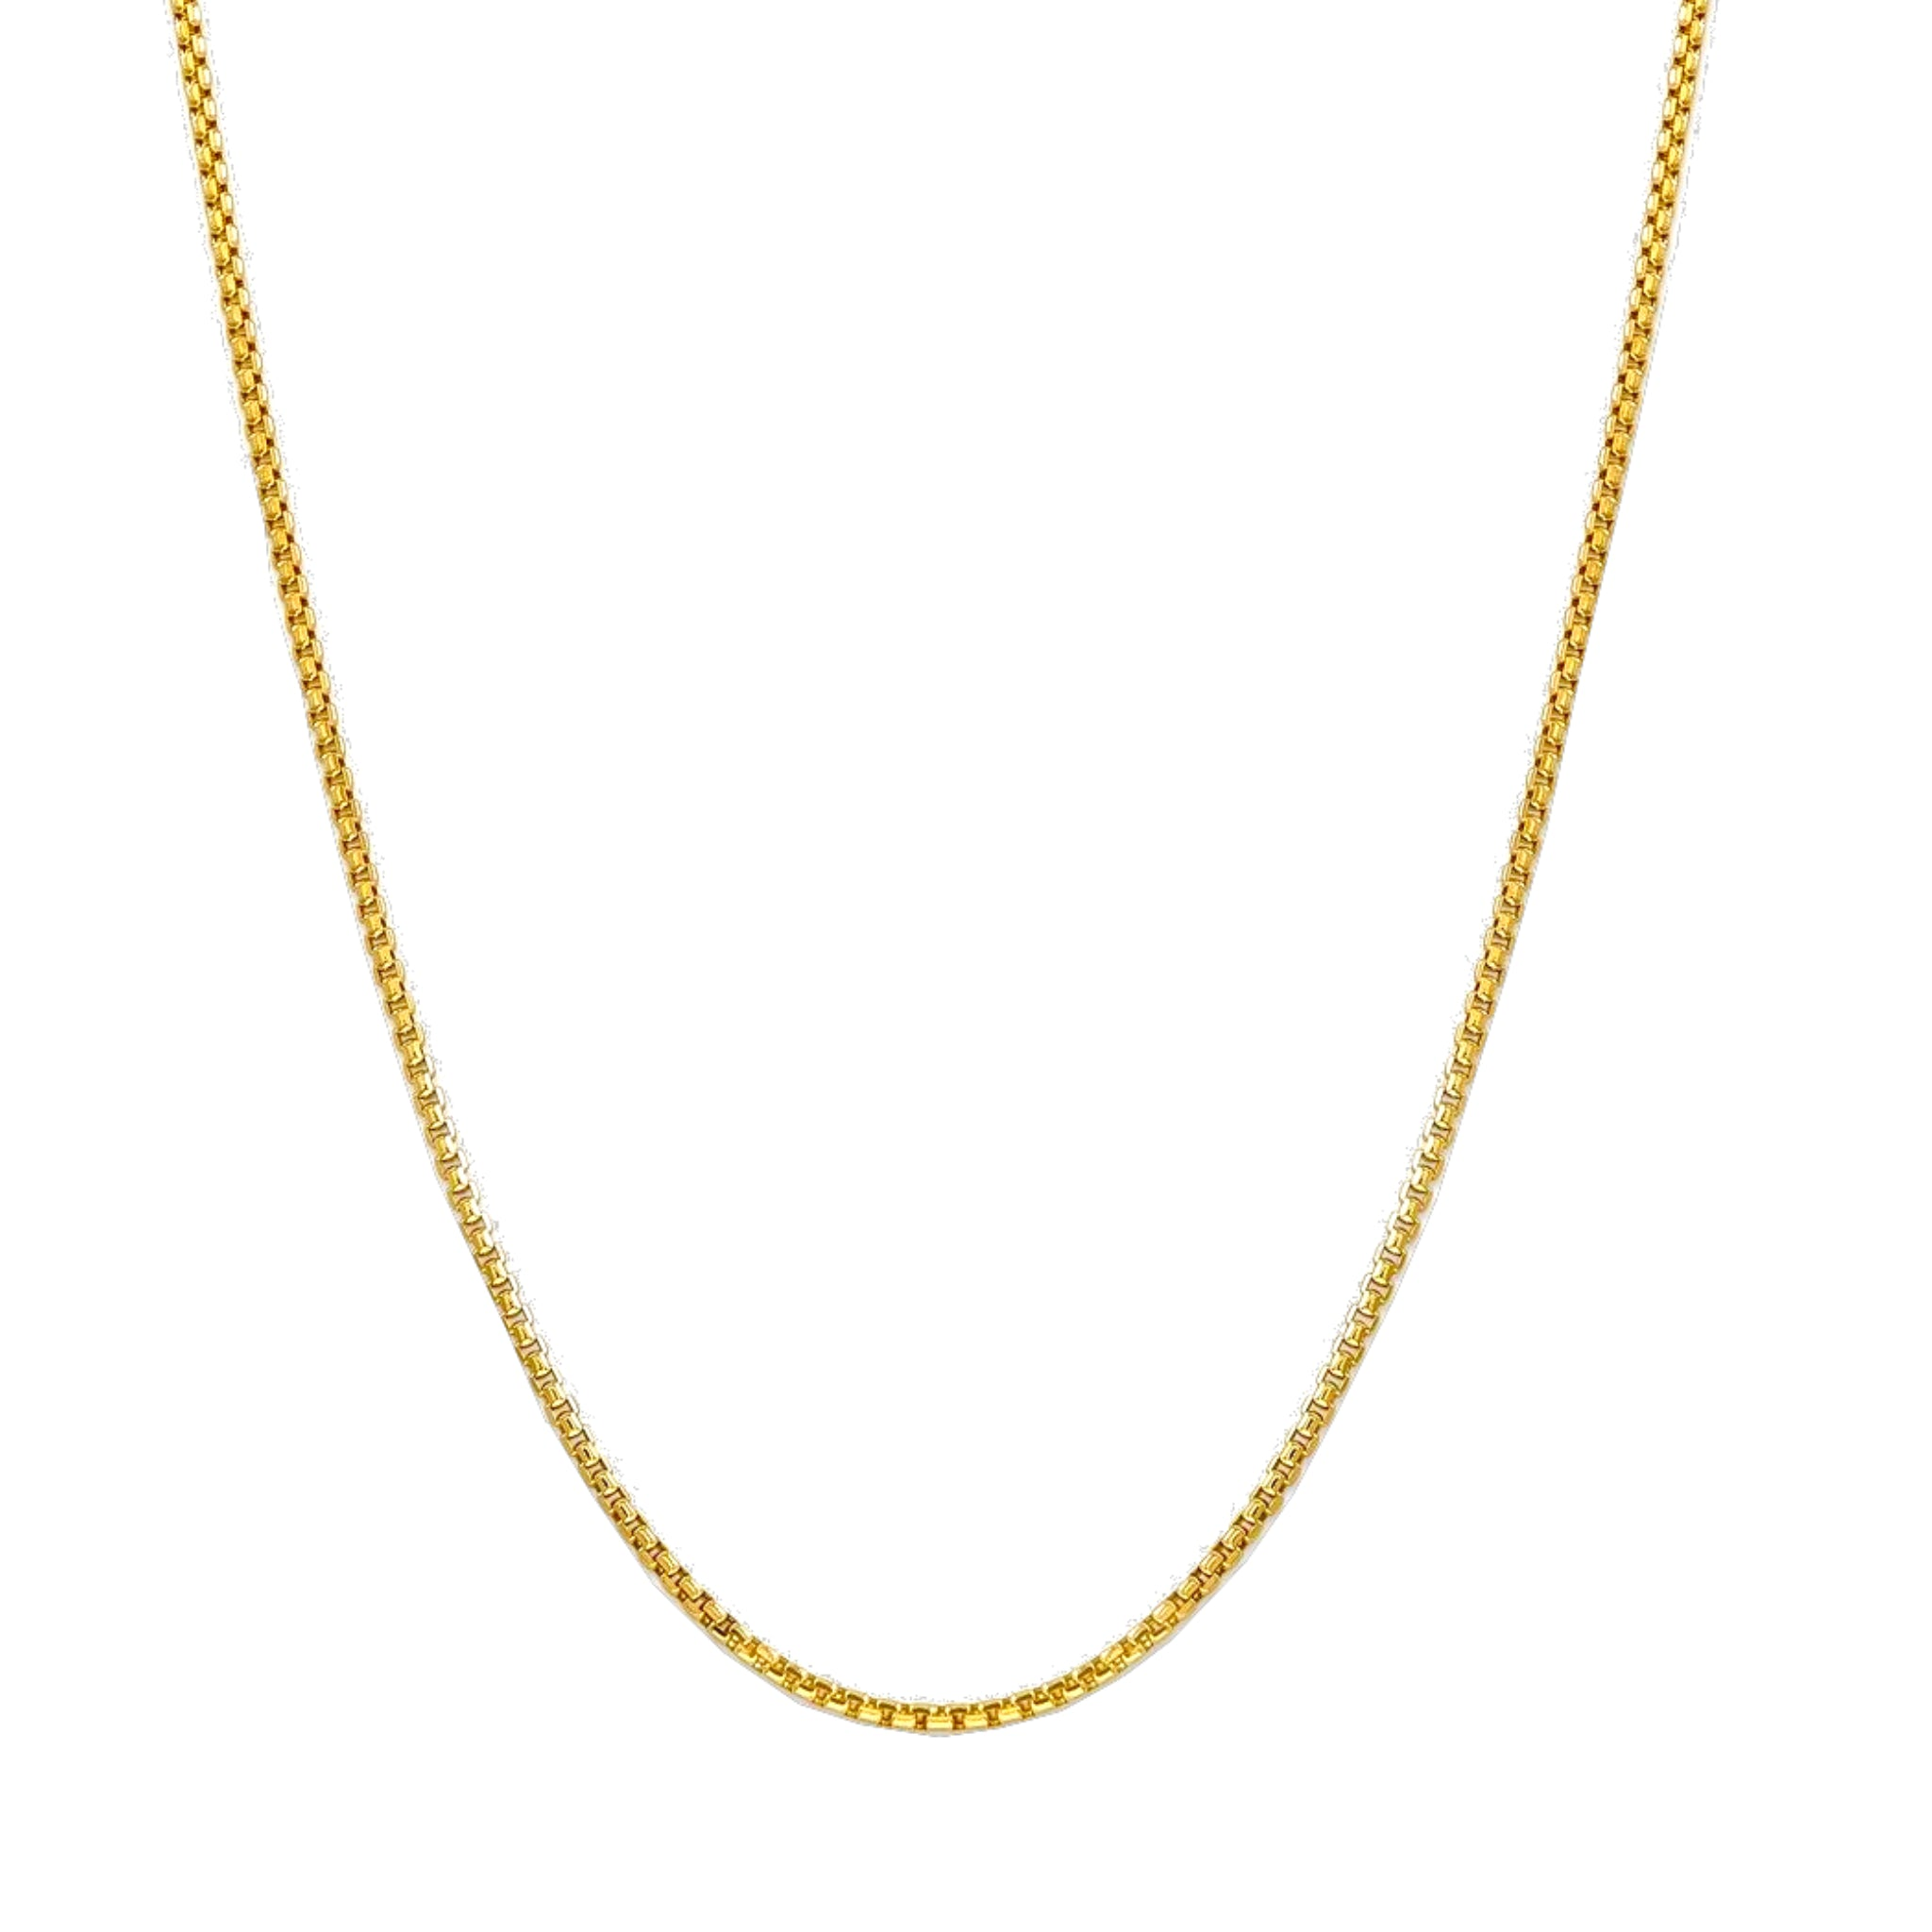 Elegant Gold Box Chain 2MM - 14K Solid Yellow Gold